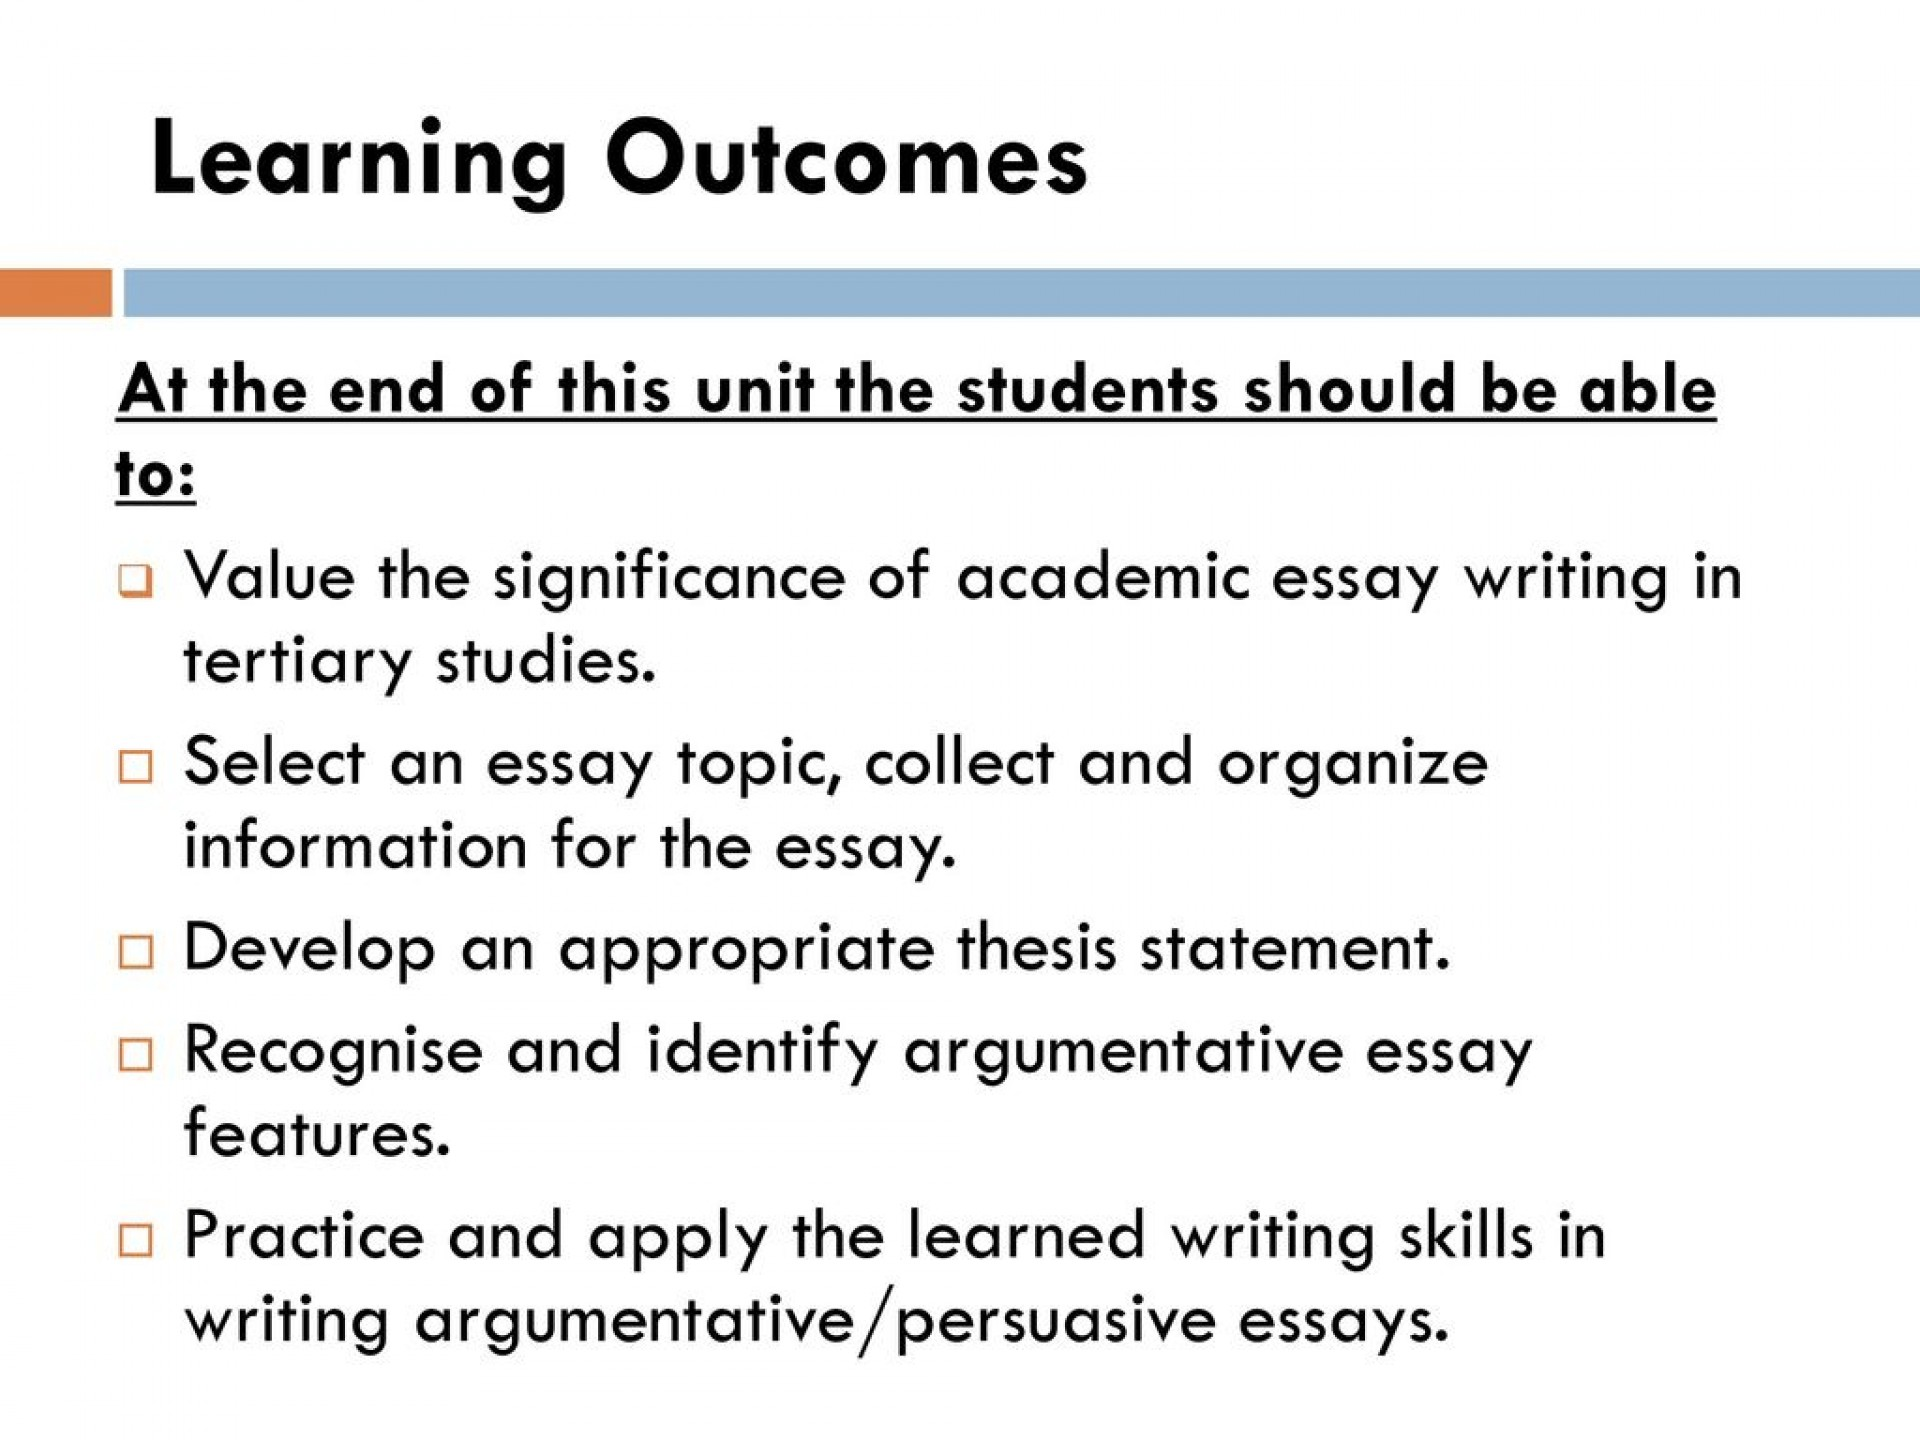 012 Essay Example Topic Thesis Introduction Body Conclusion Referencing How To End Your Argumentative Paragraph In Staggering An Stop Bullying Start 1920